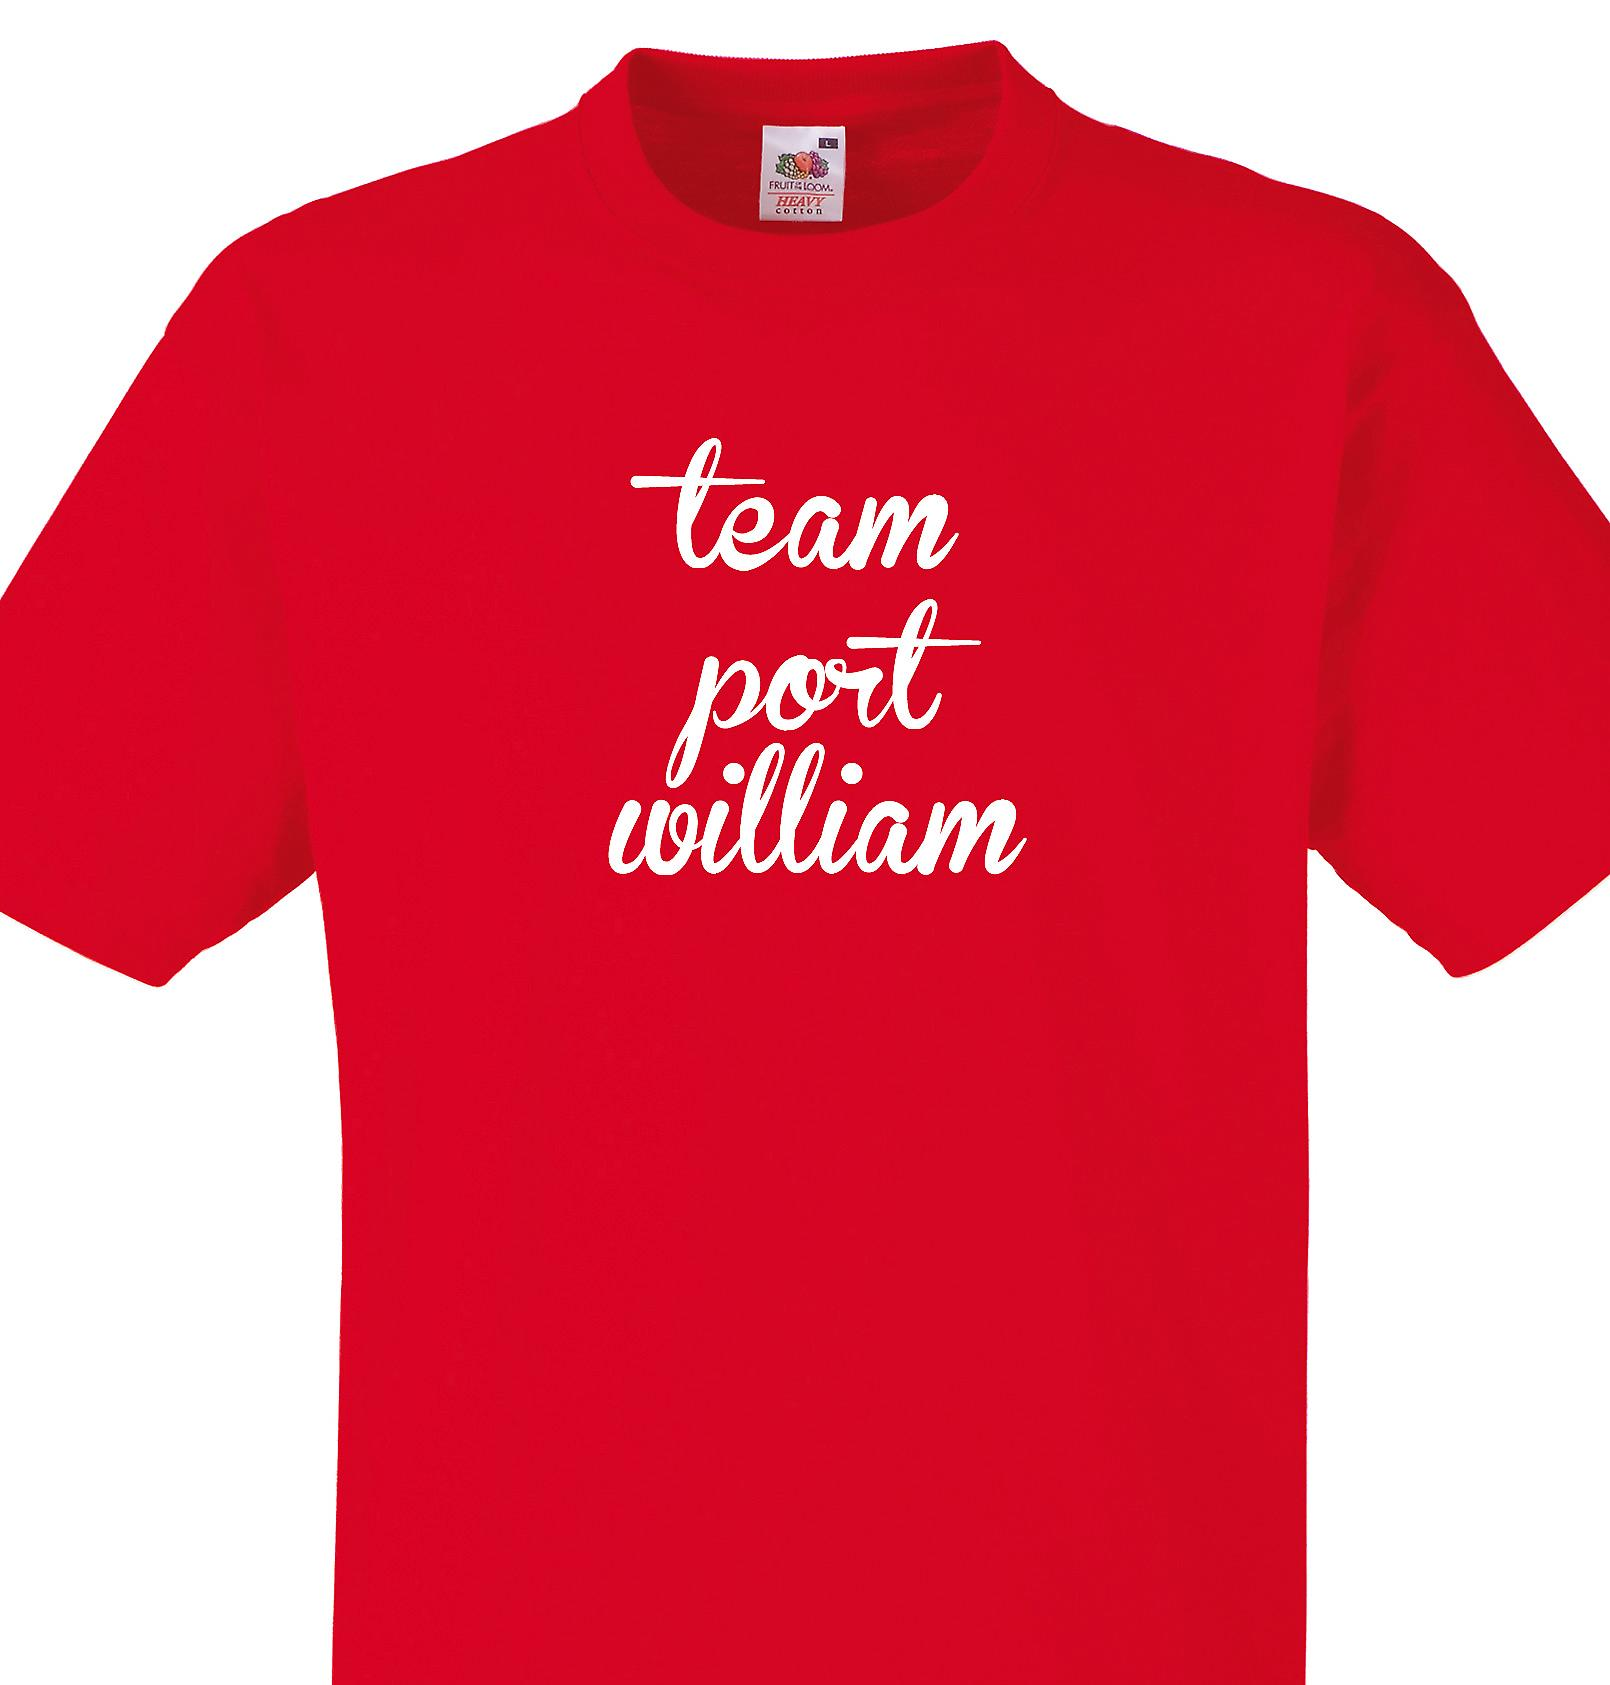 Team Port william Red T shirt